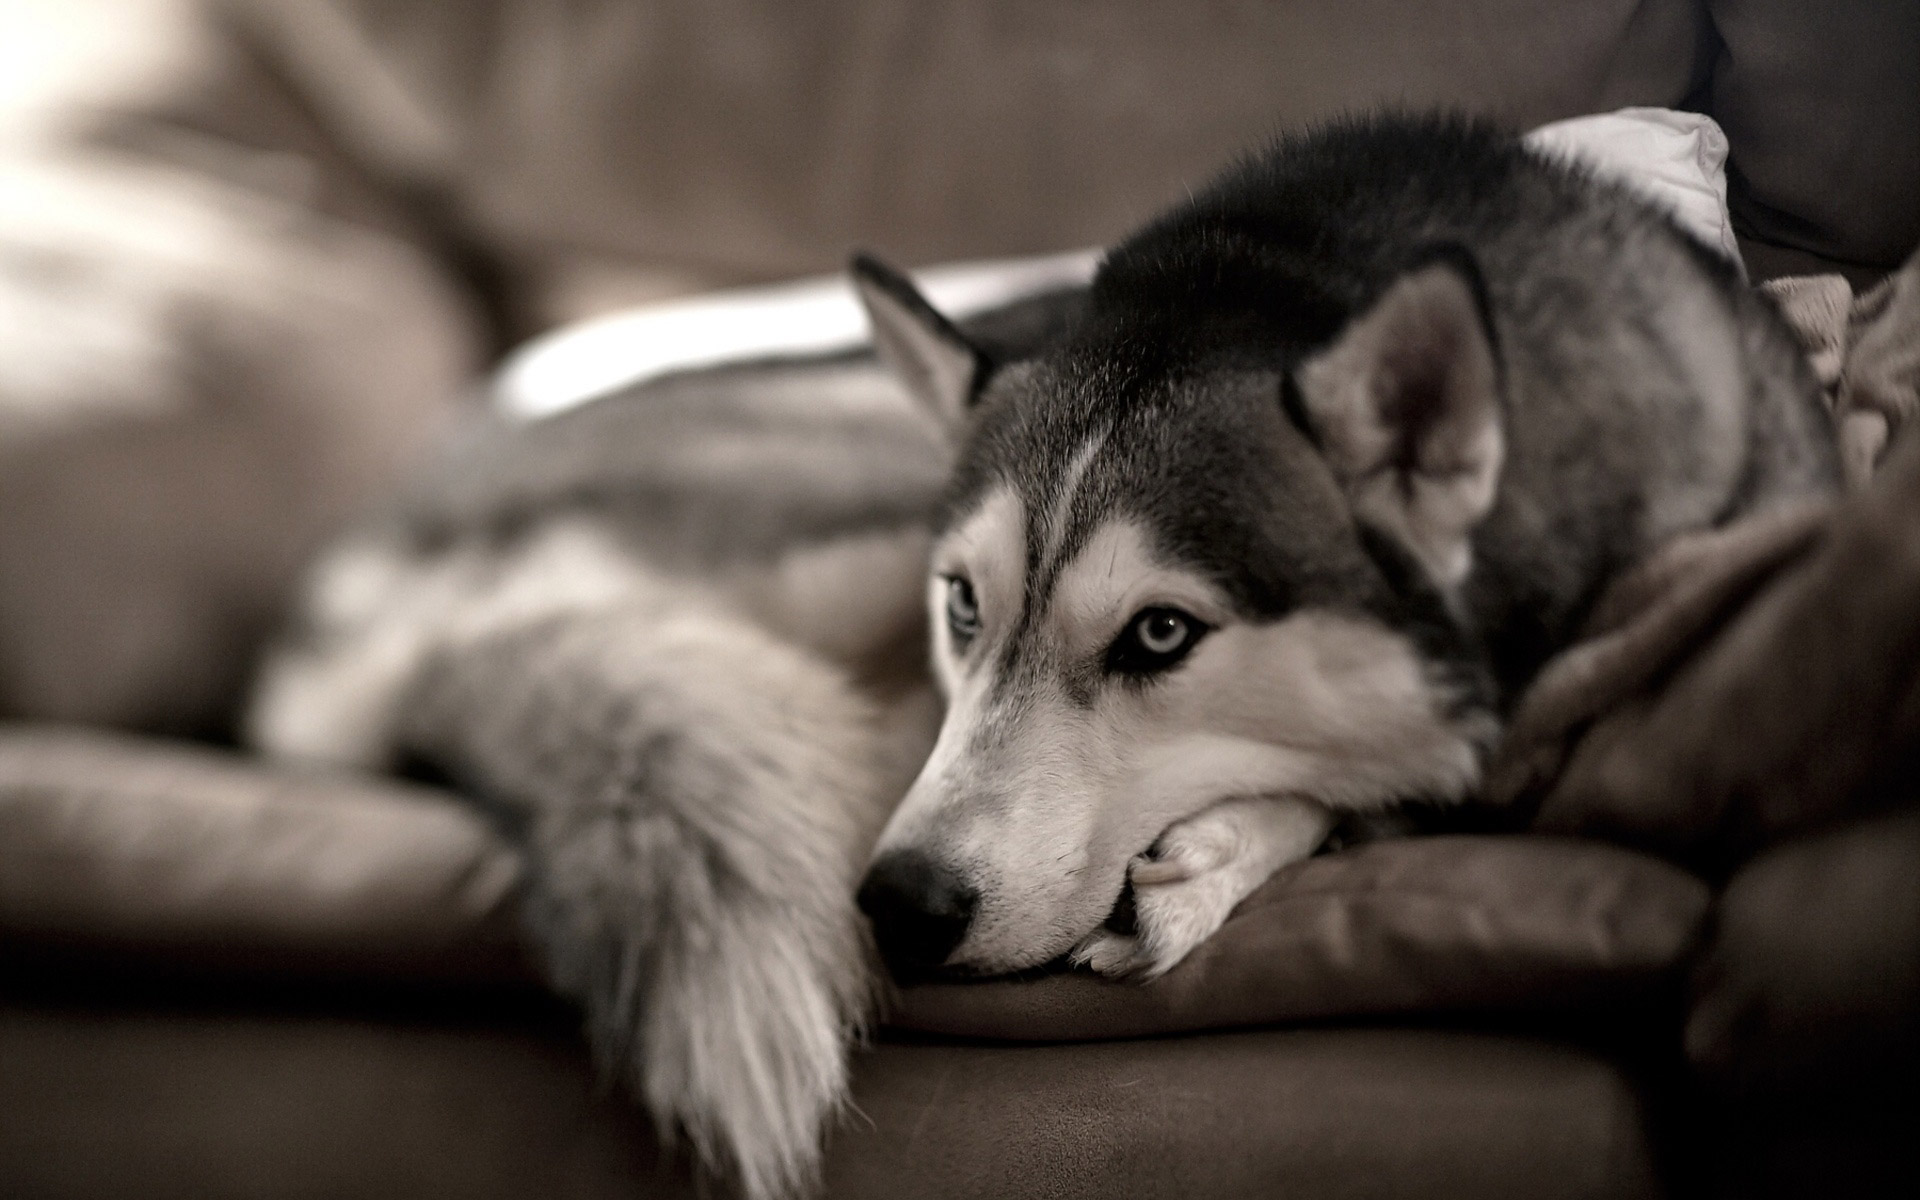 Siberian husky on the couch wallpapers55com Best Wallpapers for 1920x1200